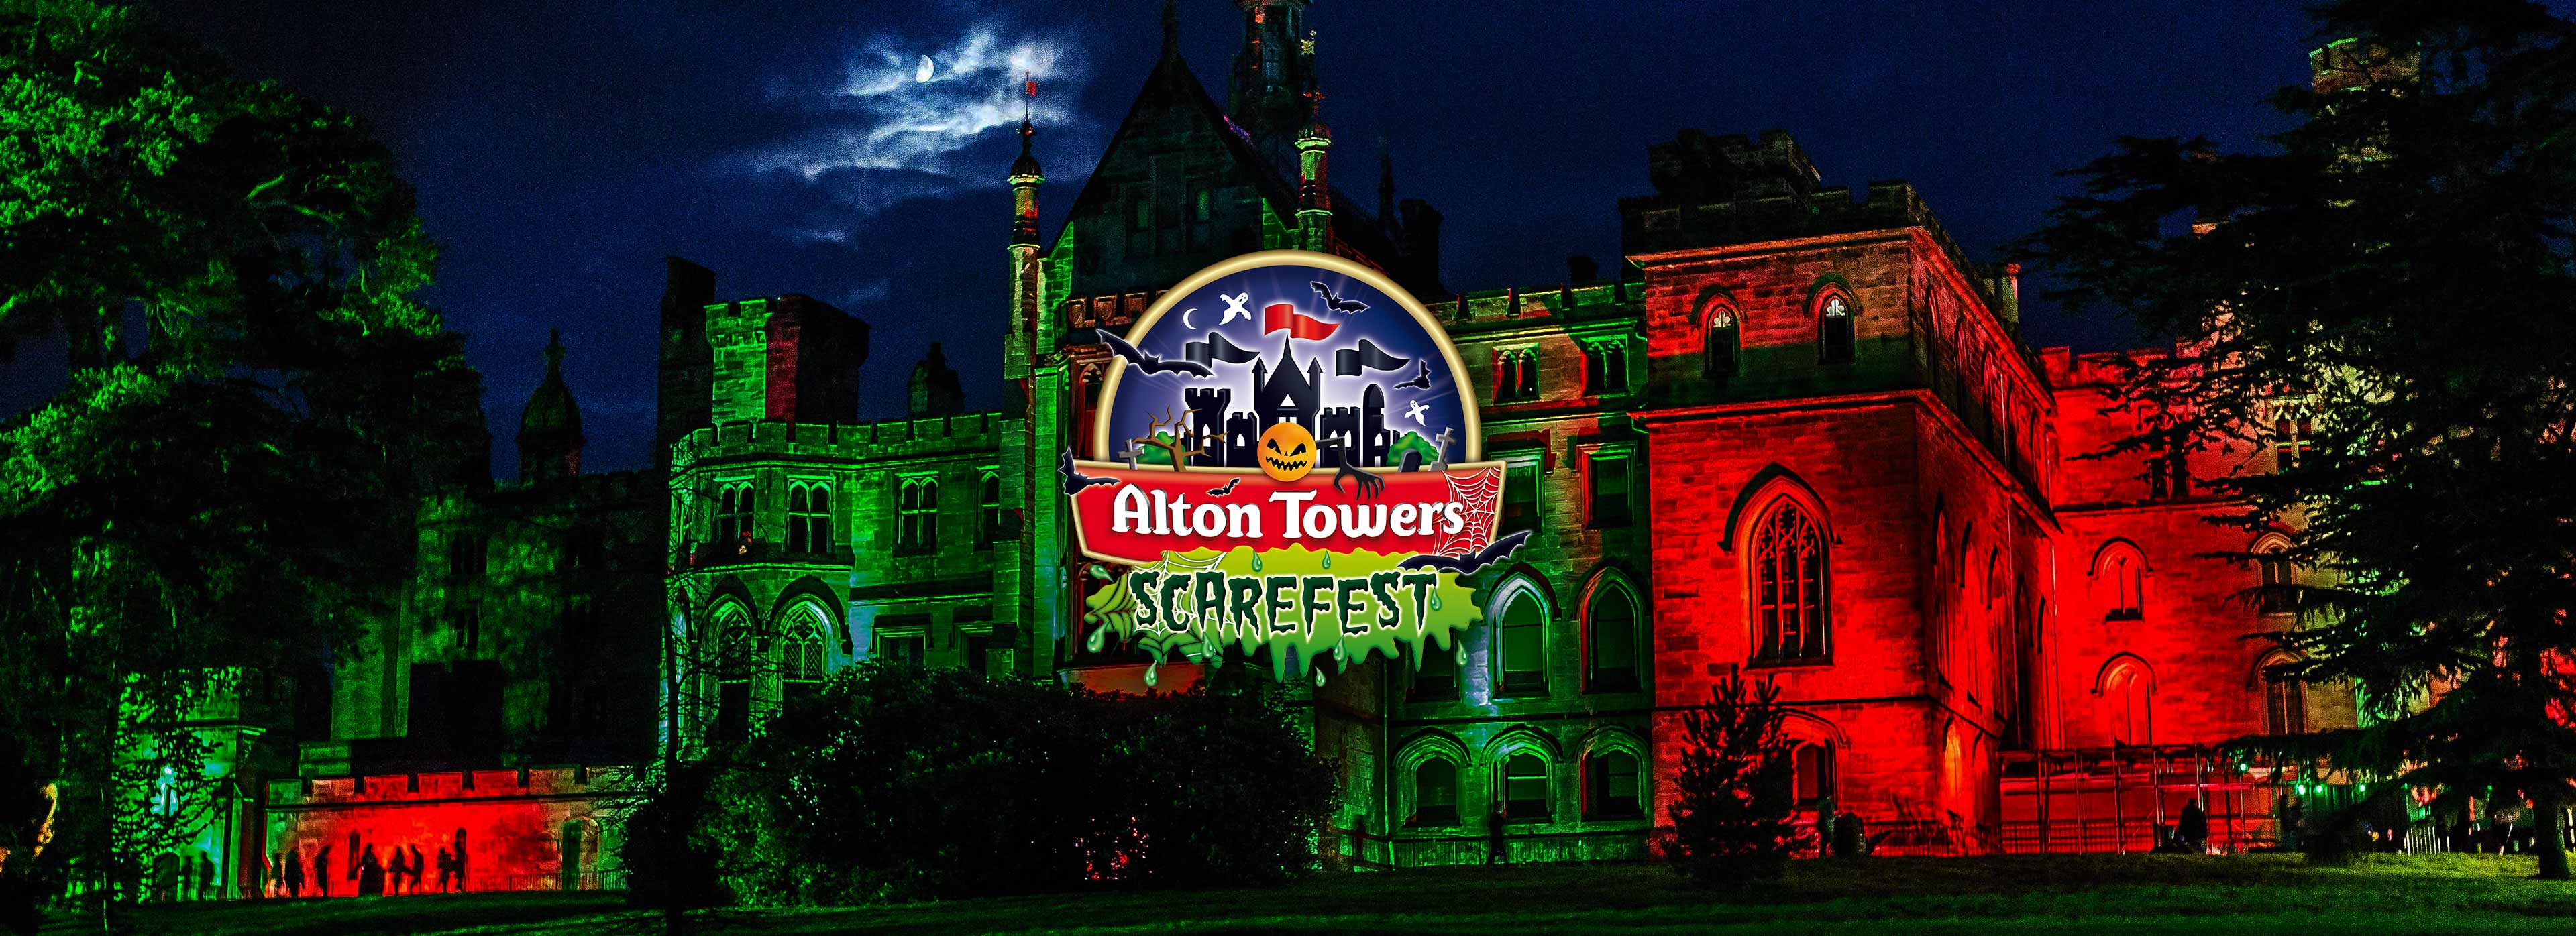 Scarefest Halloween at Alton Towers